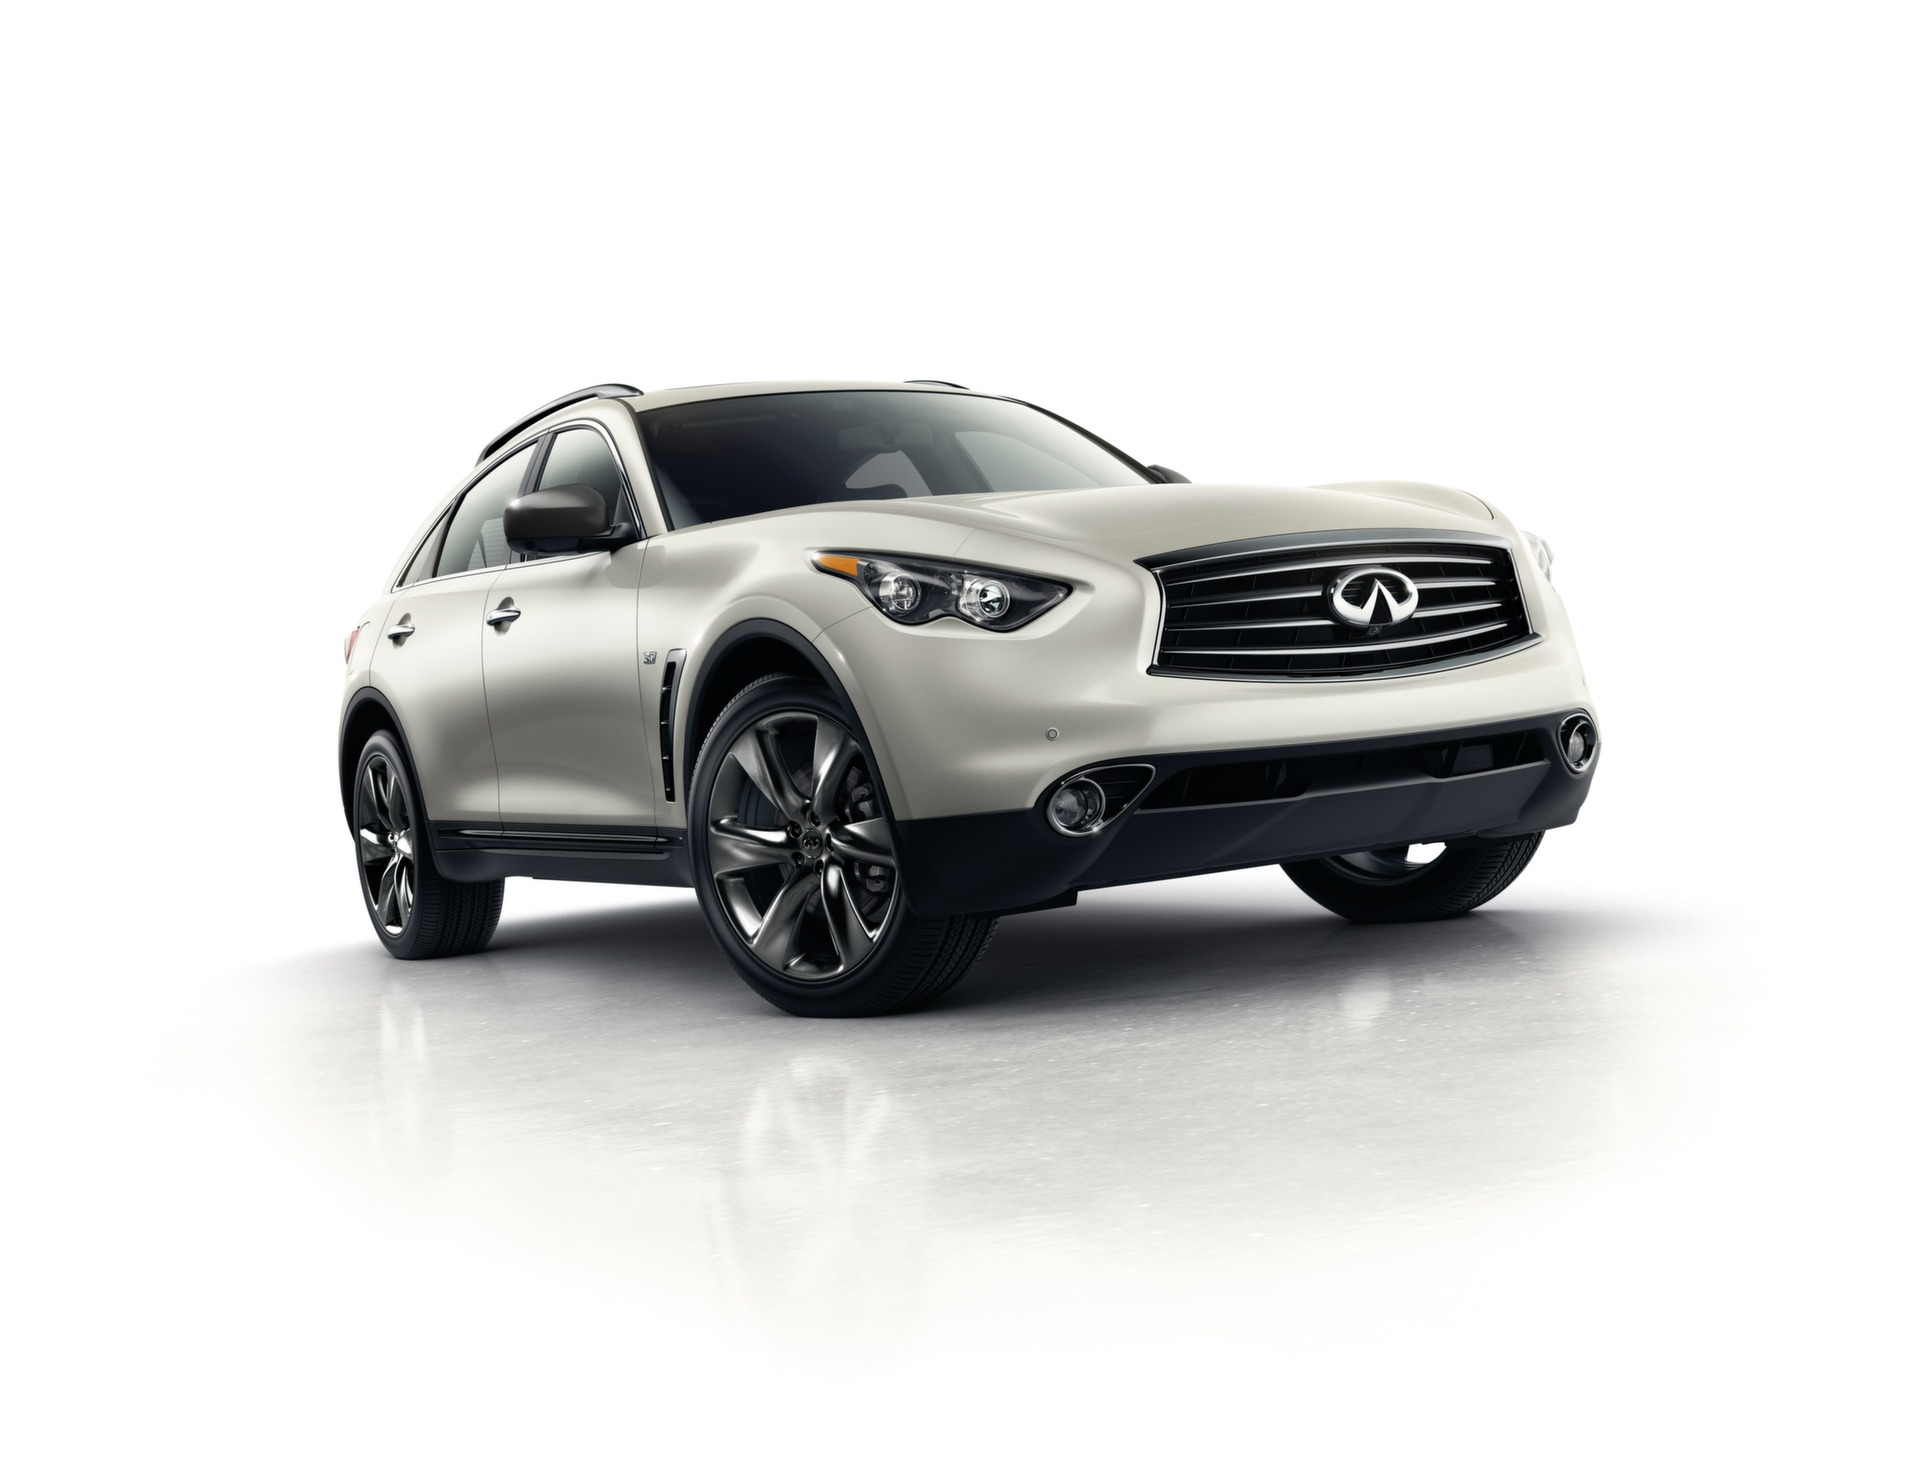 2016 Infiniti Qx70 Review Ratings Specs Prices And Photos The Car Connection